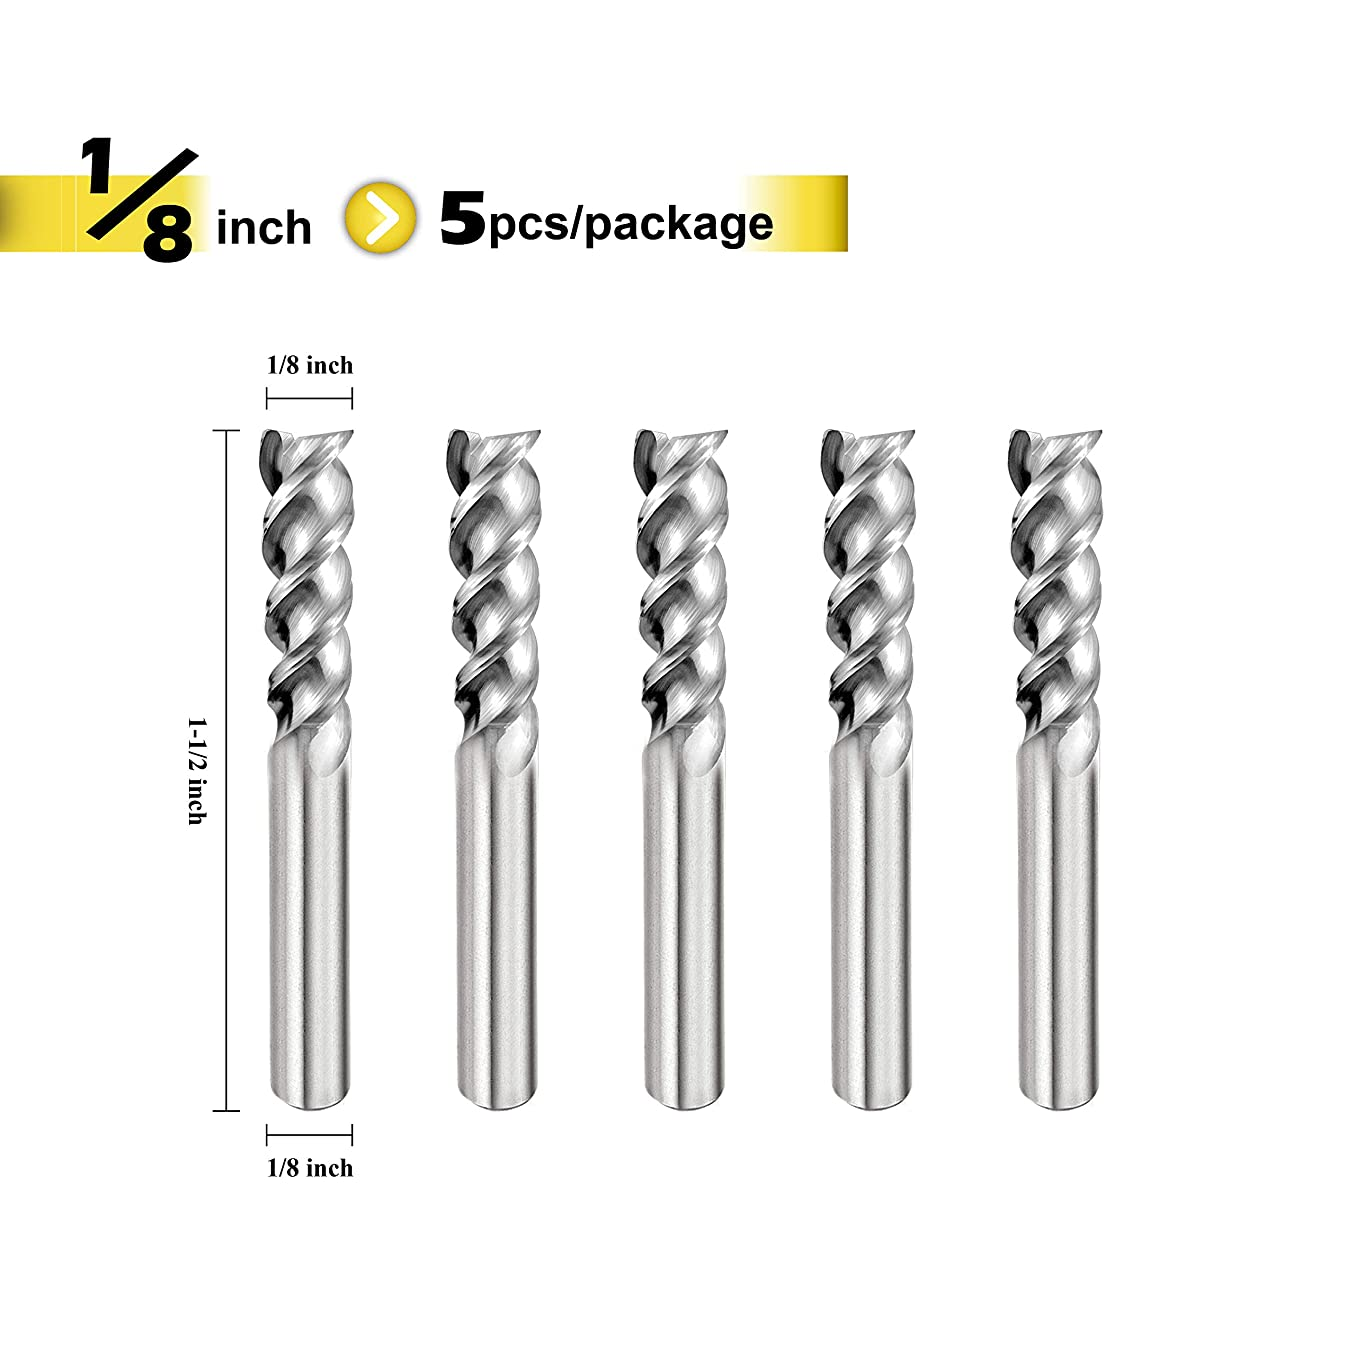 SPEED TIGER IAUE Carbide Square End Mill for Aluminum Applications - High Feed U-Type Design - for Roughing and Finishing - 3 Flute - IAUE1/8